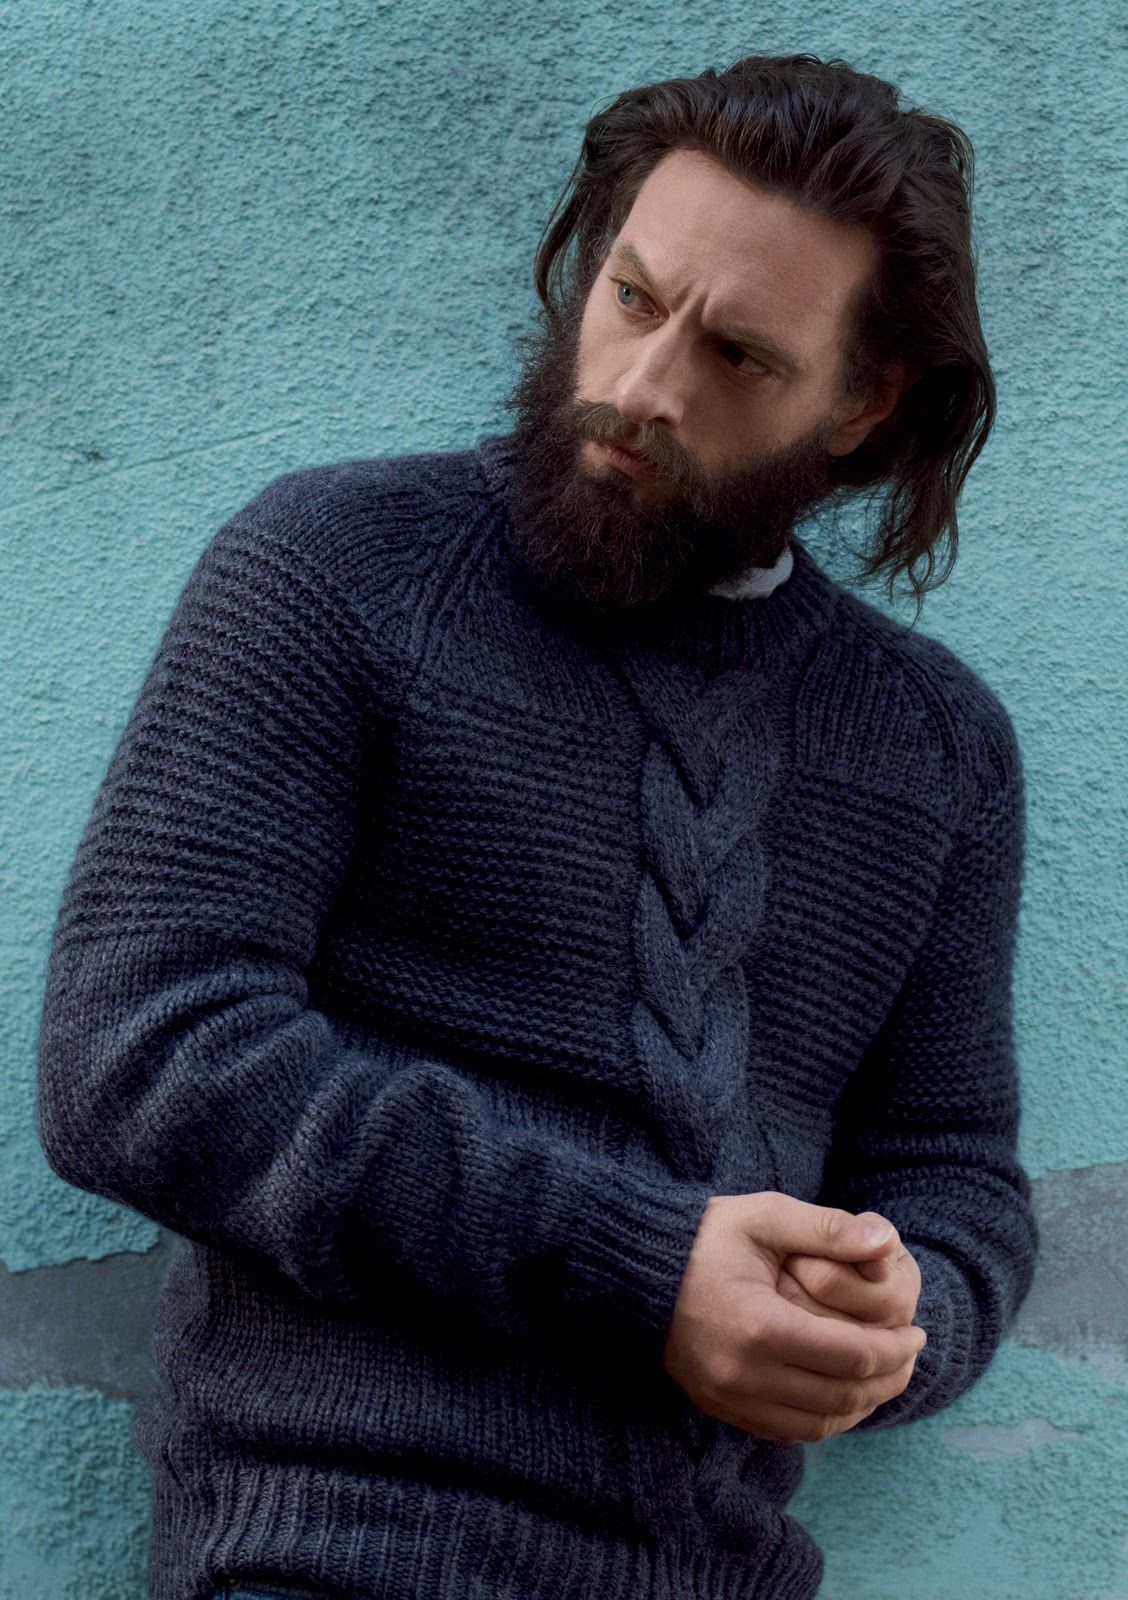 Rugged | Chunky Knits | Pinterest | Cable and Guy